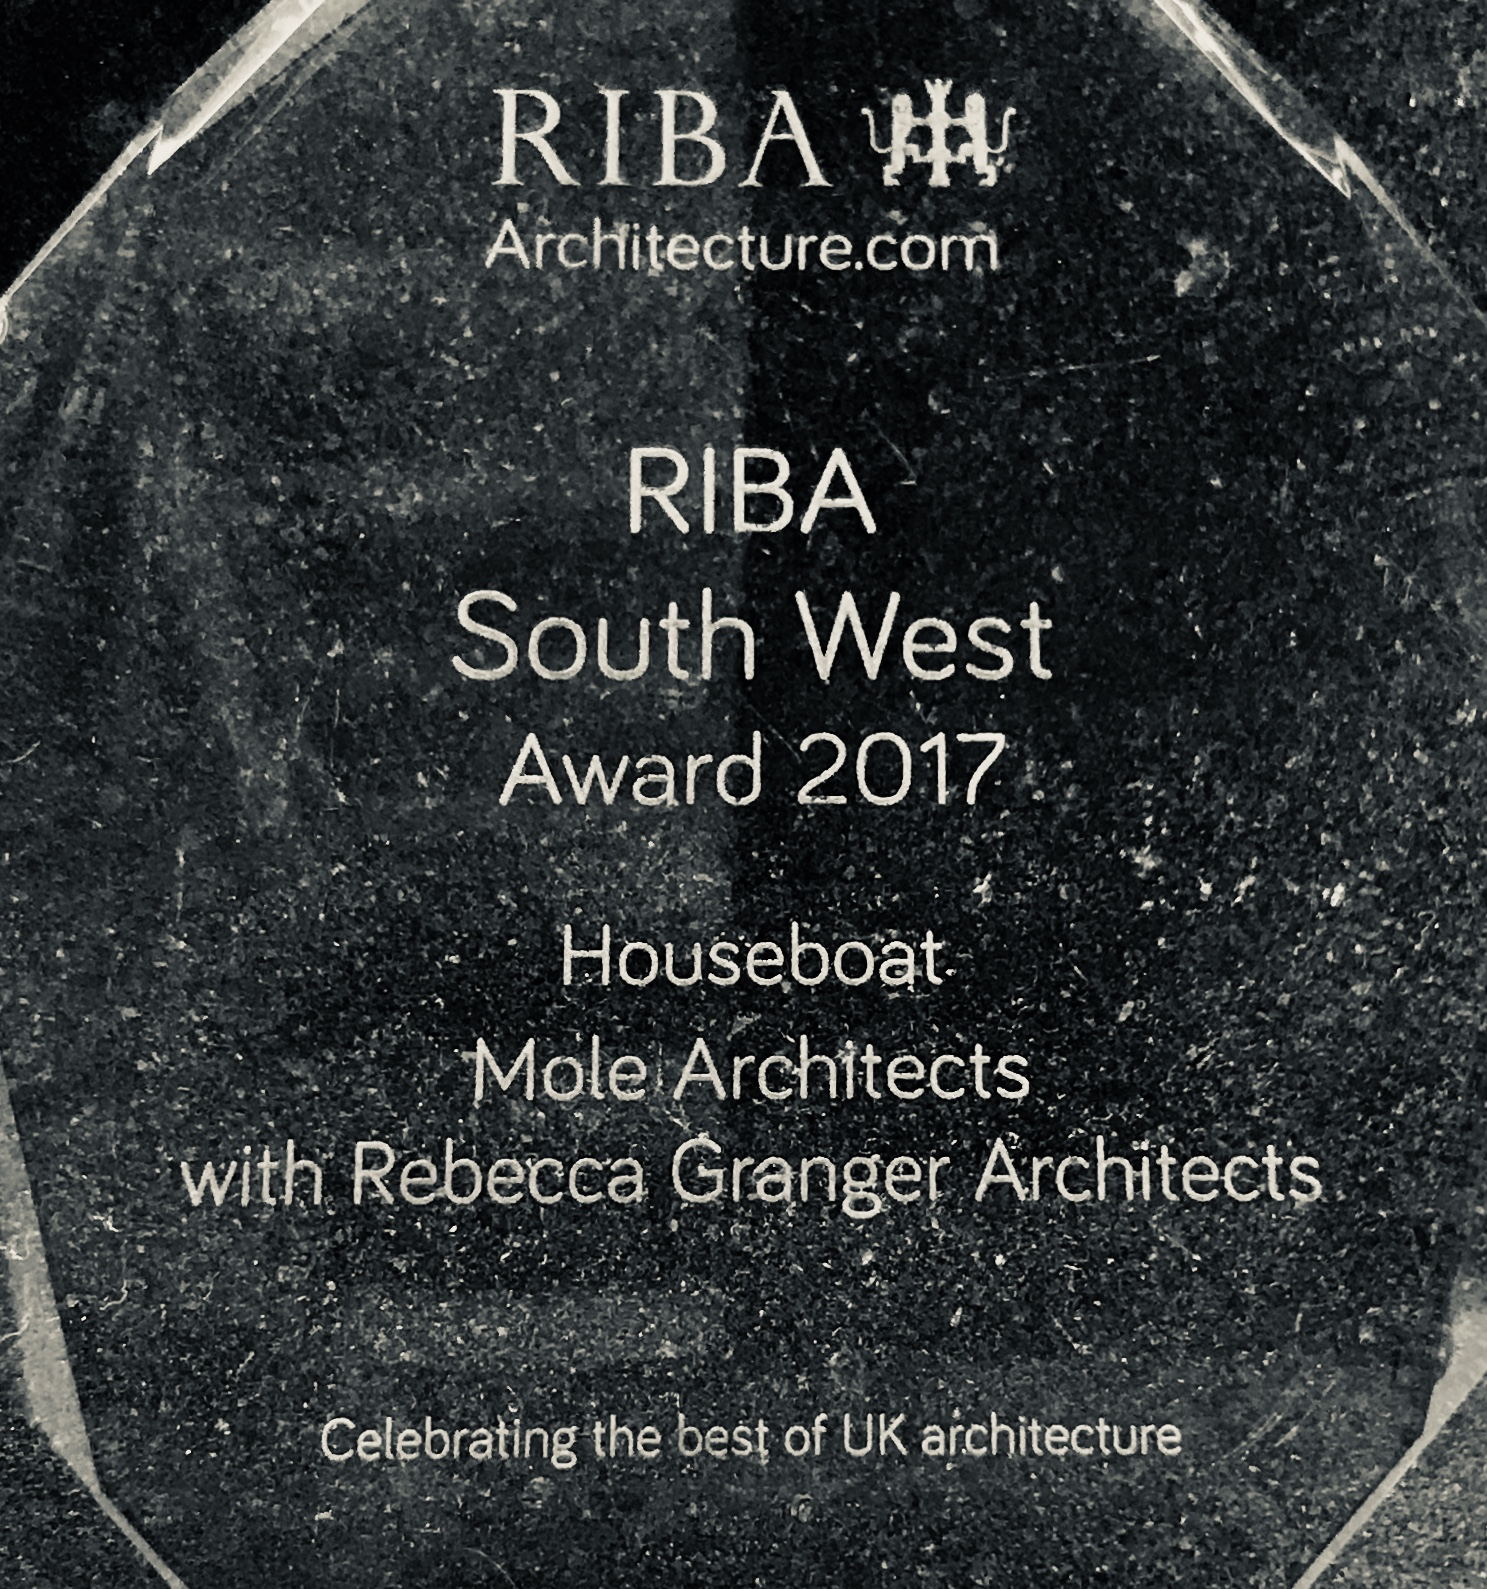 - The Houseboat wins a South West Regional Award at the event held in Bristol by the RIBA in May 2017